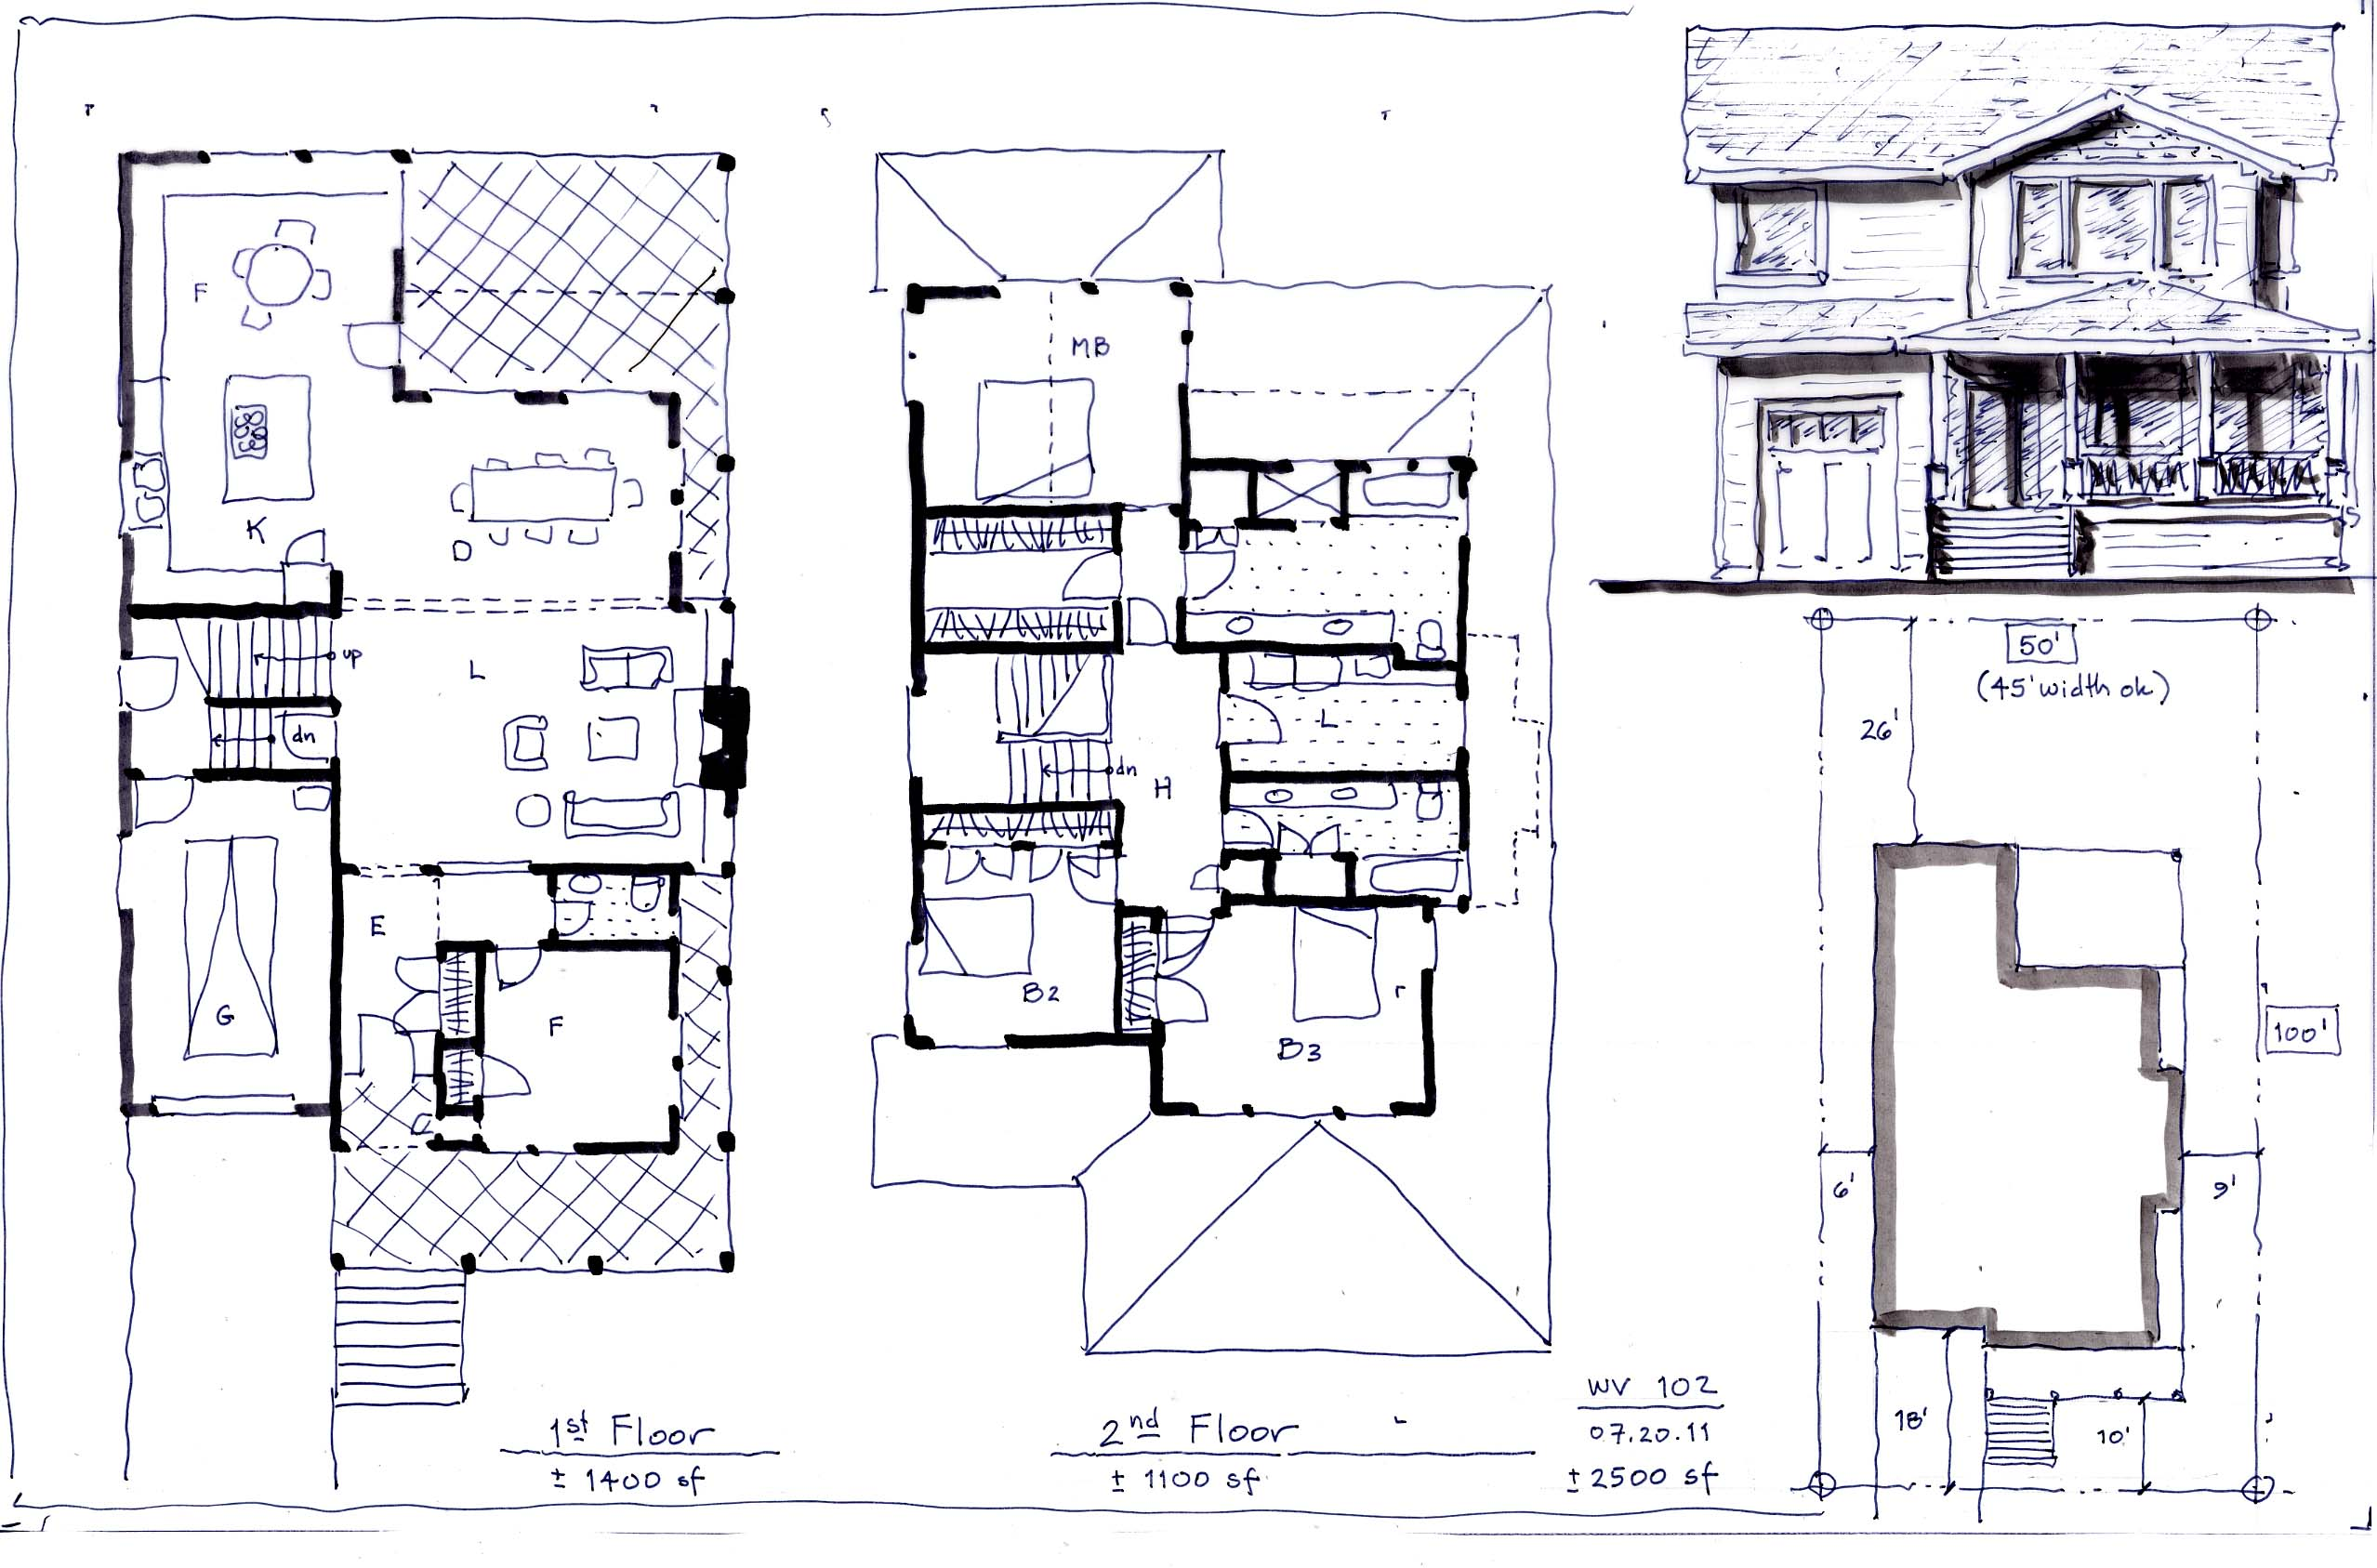 2500 sq ft home 3 bedroom floor plan 2500 sq ft house for 2500 sq ft ranch house plans